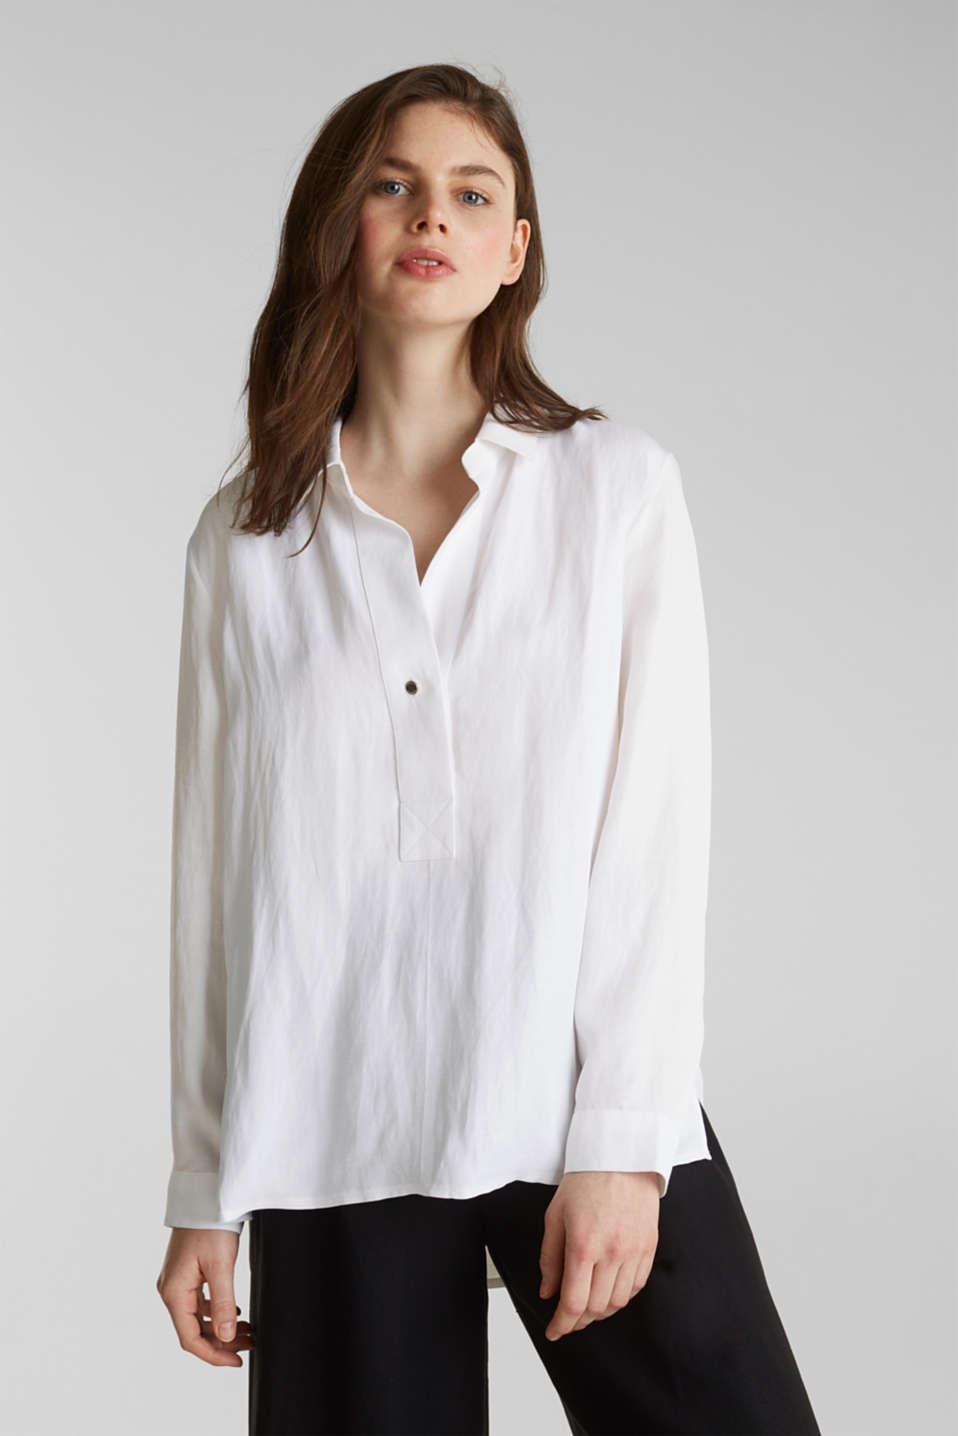 Esprit - Blended linen: Slip-on blouse with button